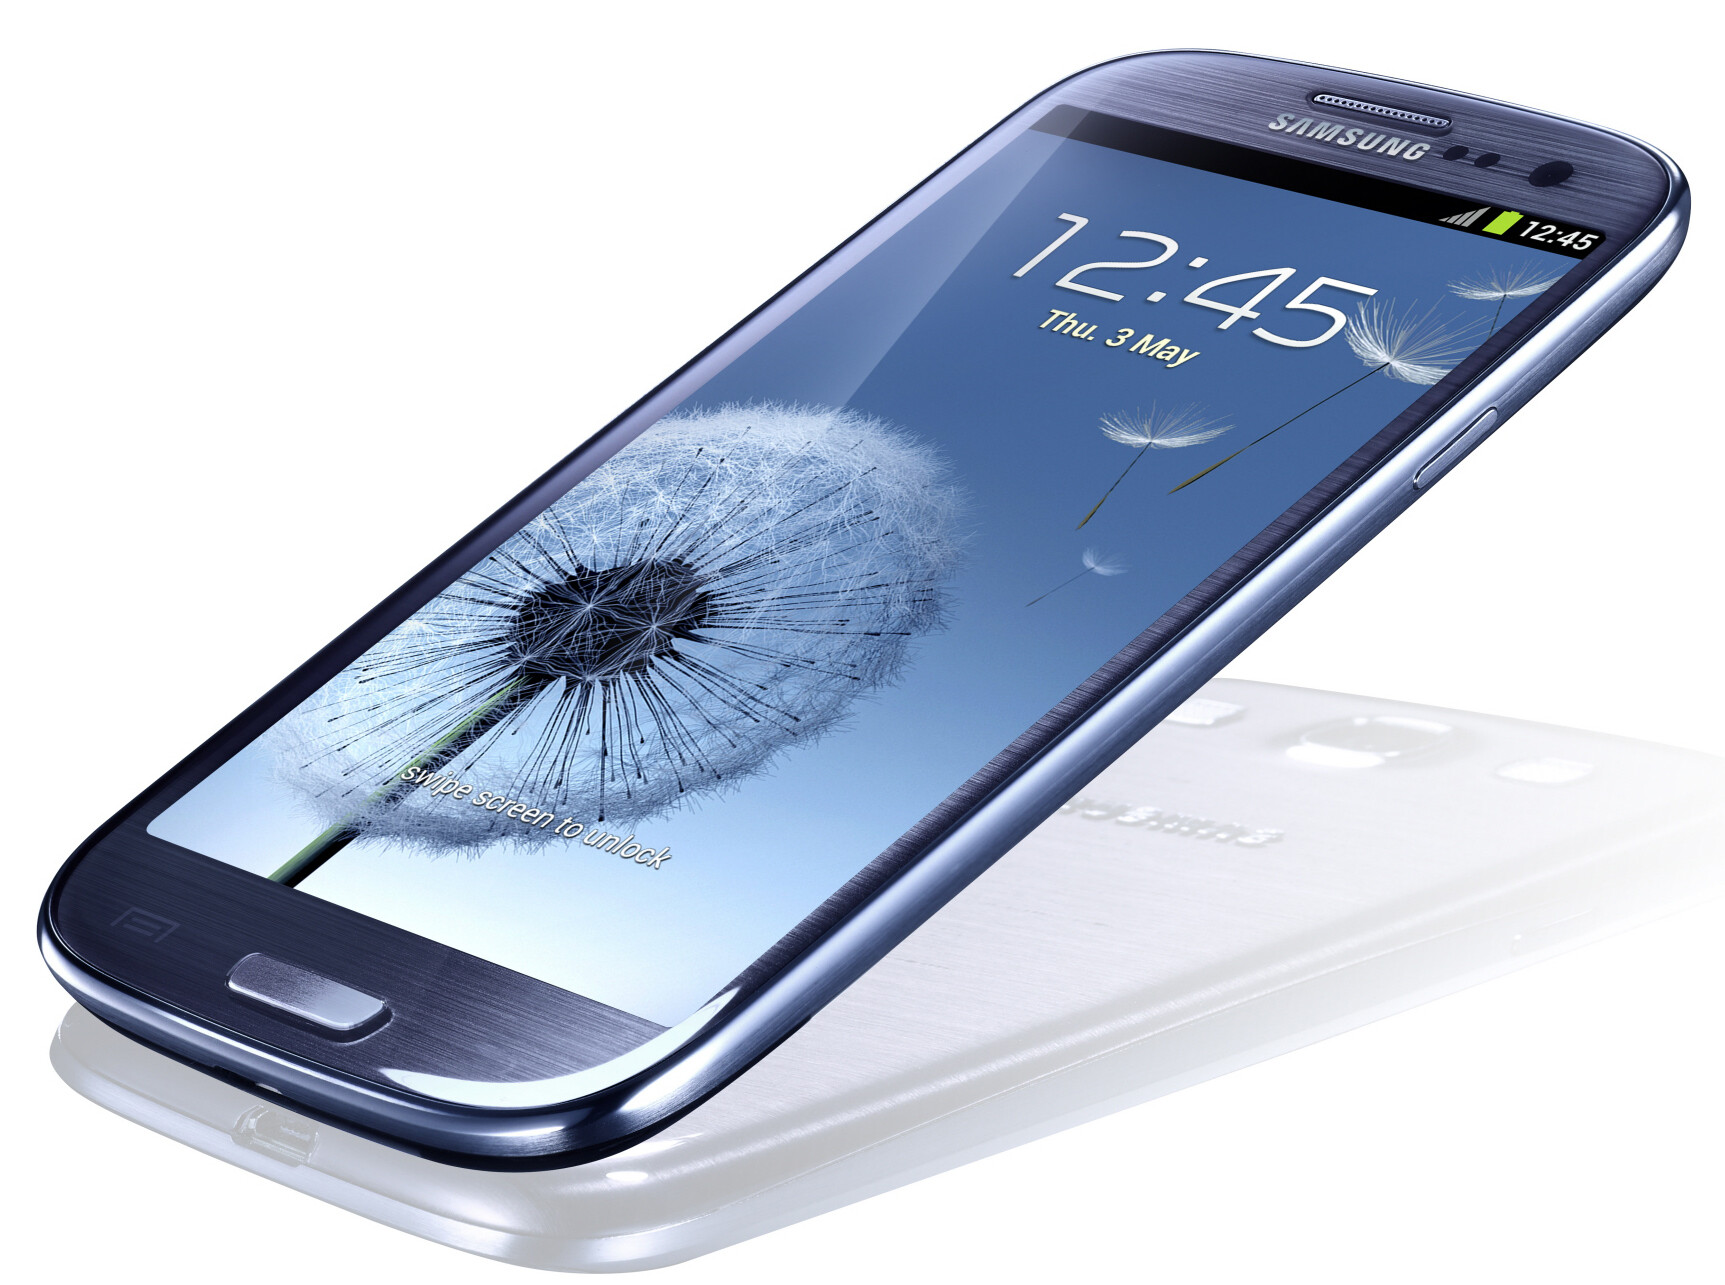 samsung galaxy s iii manual user guide